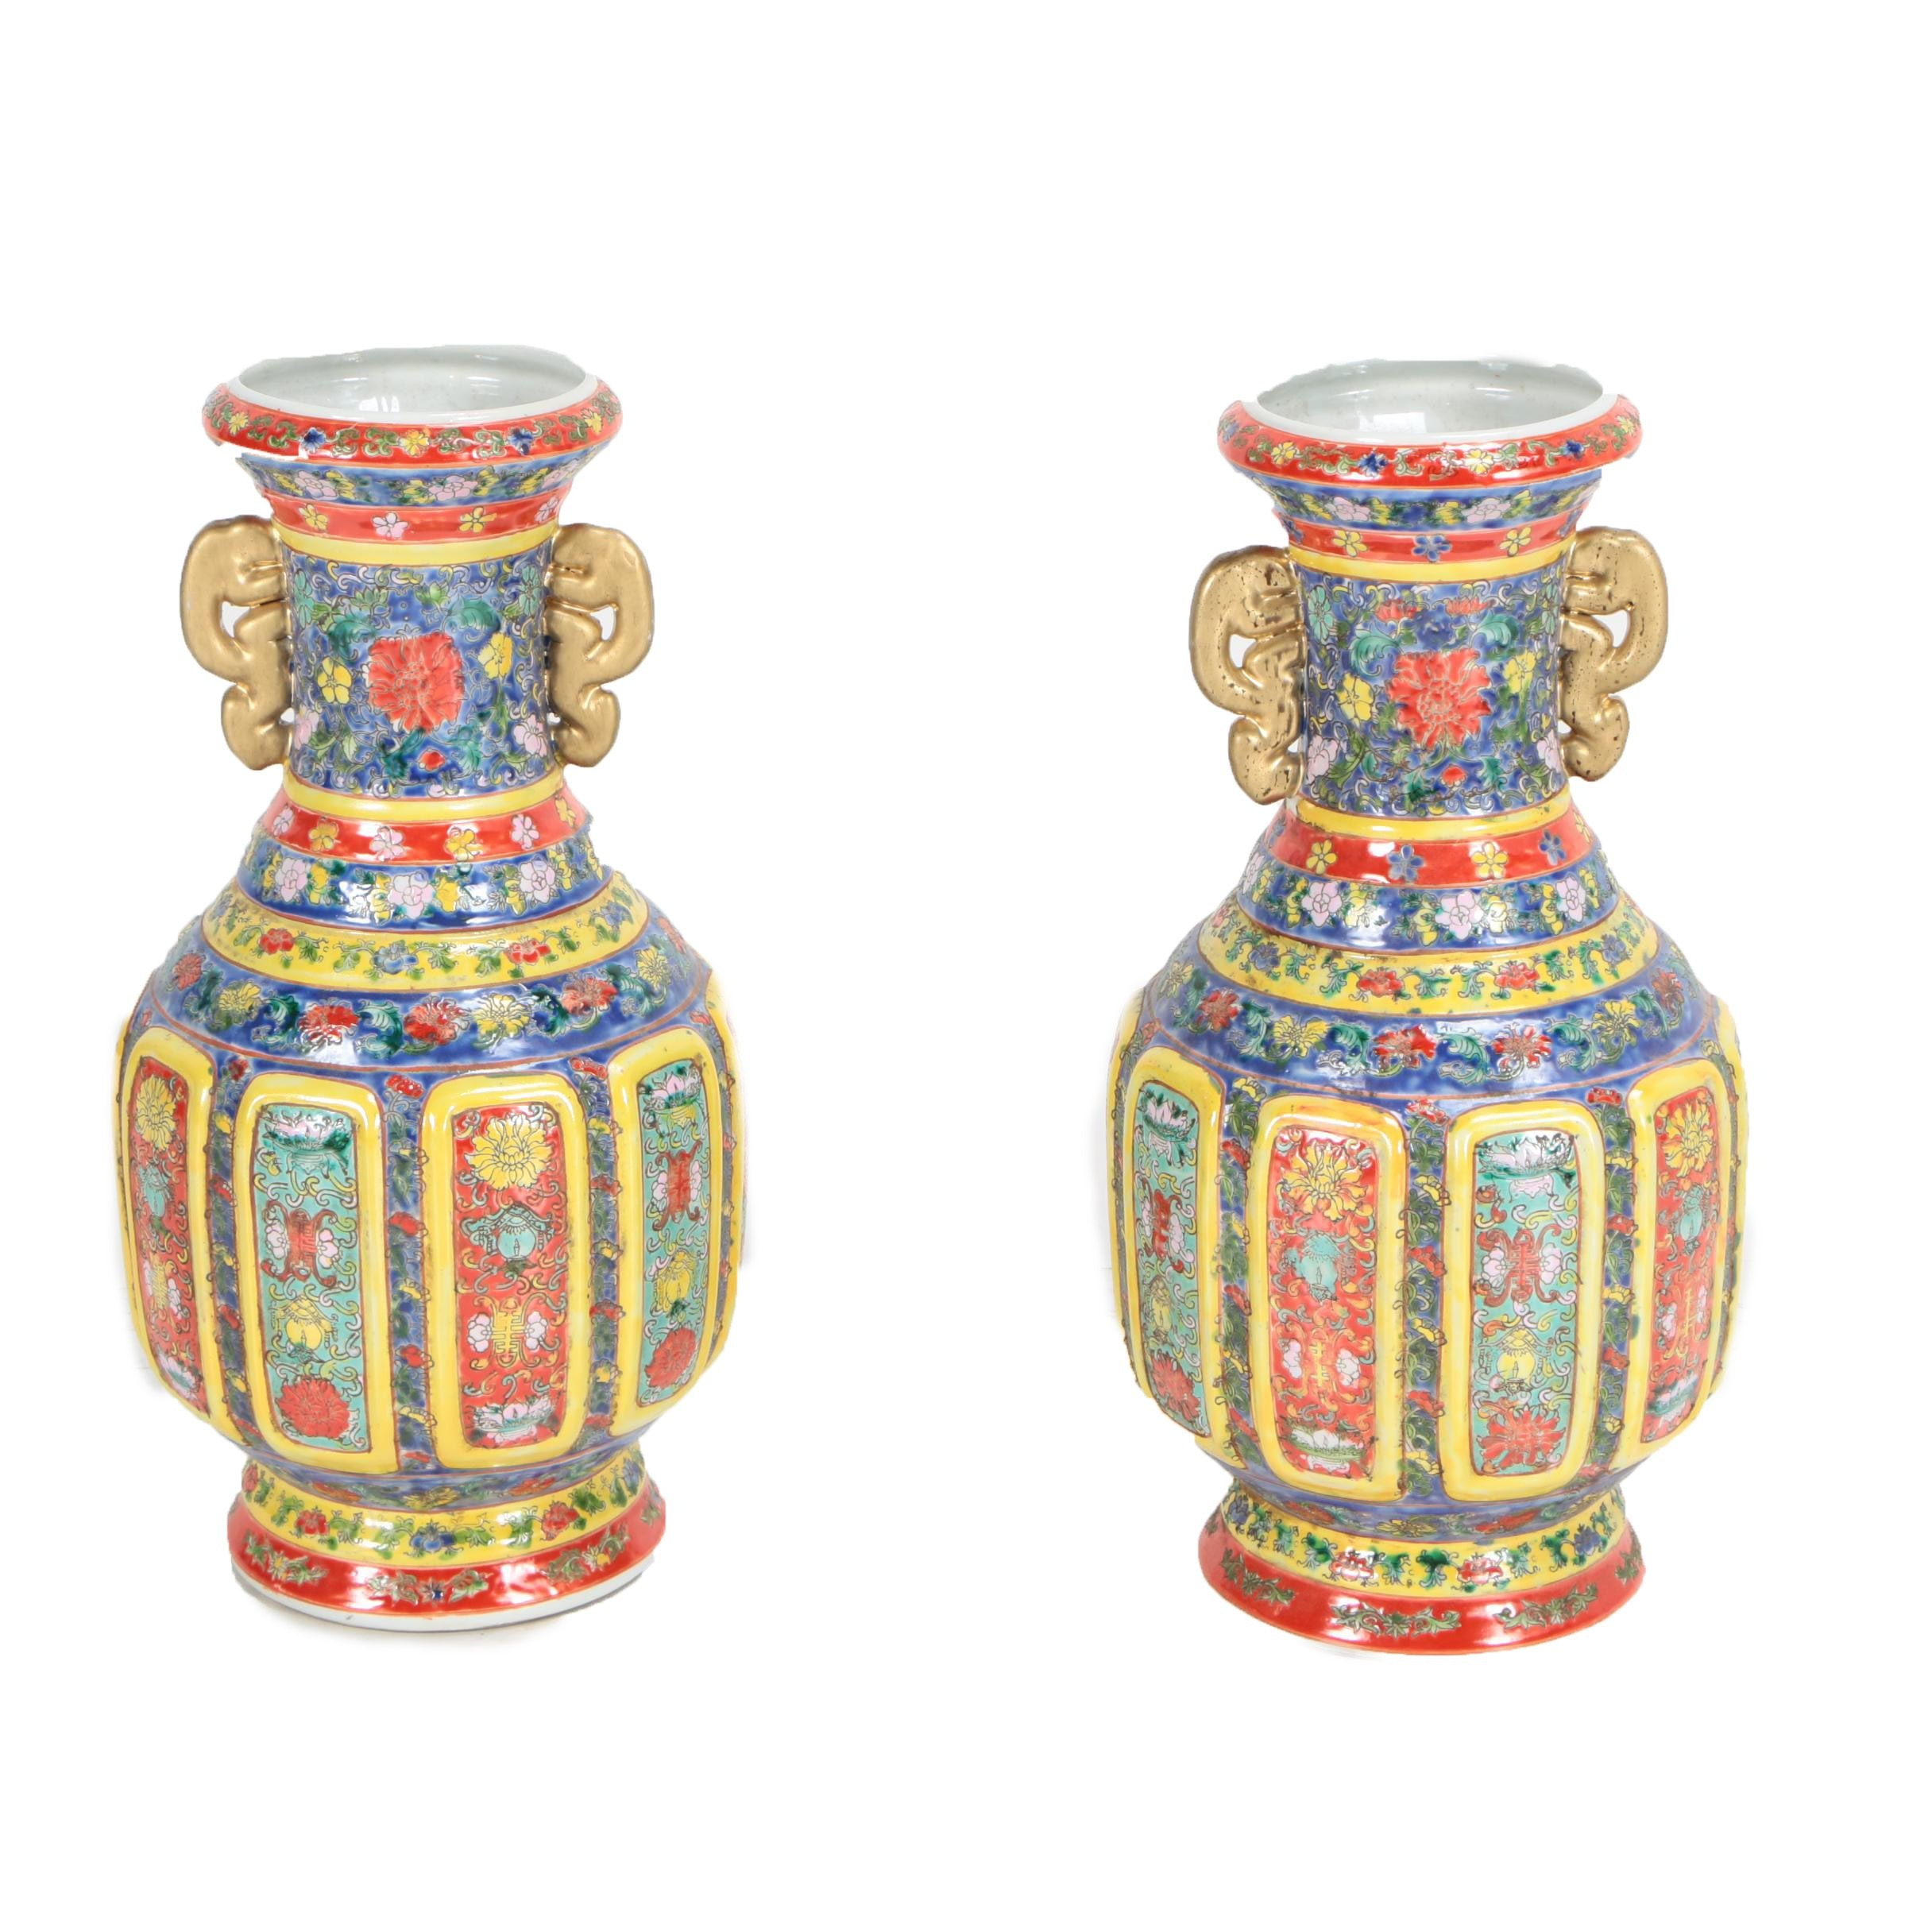 Chinese Hand-Painted Floral Motif Porcelain Vases